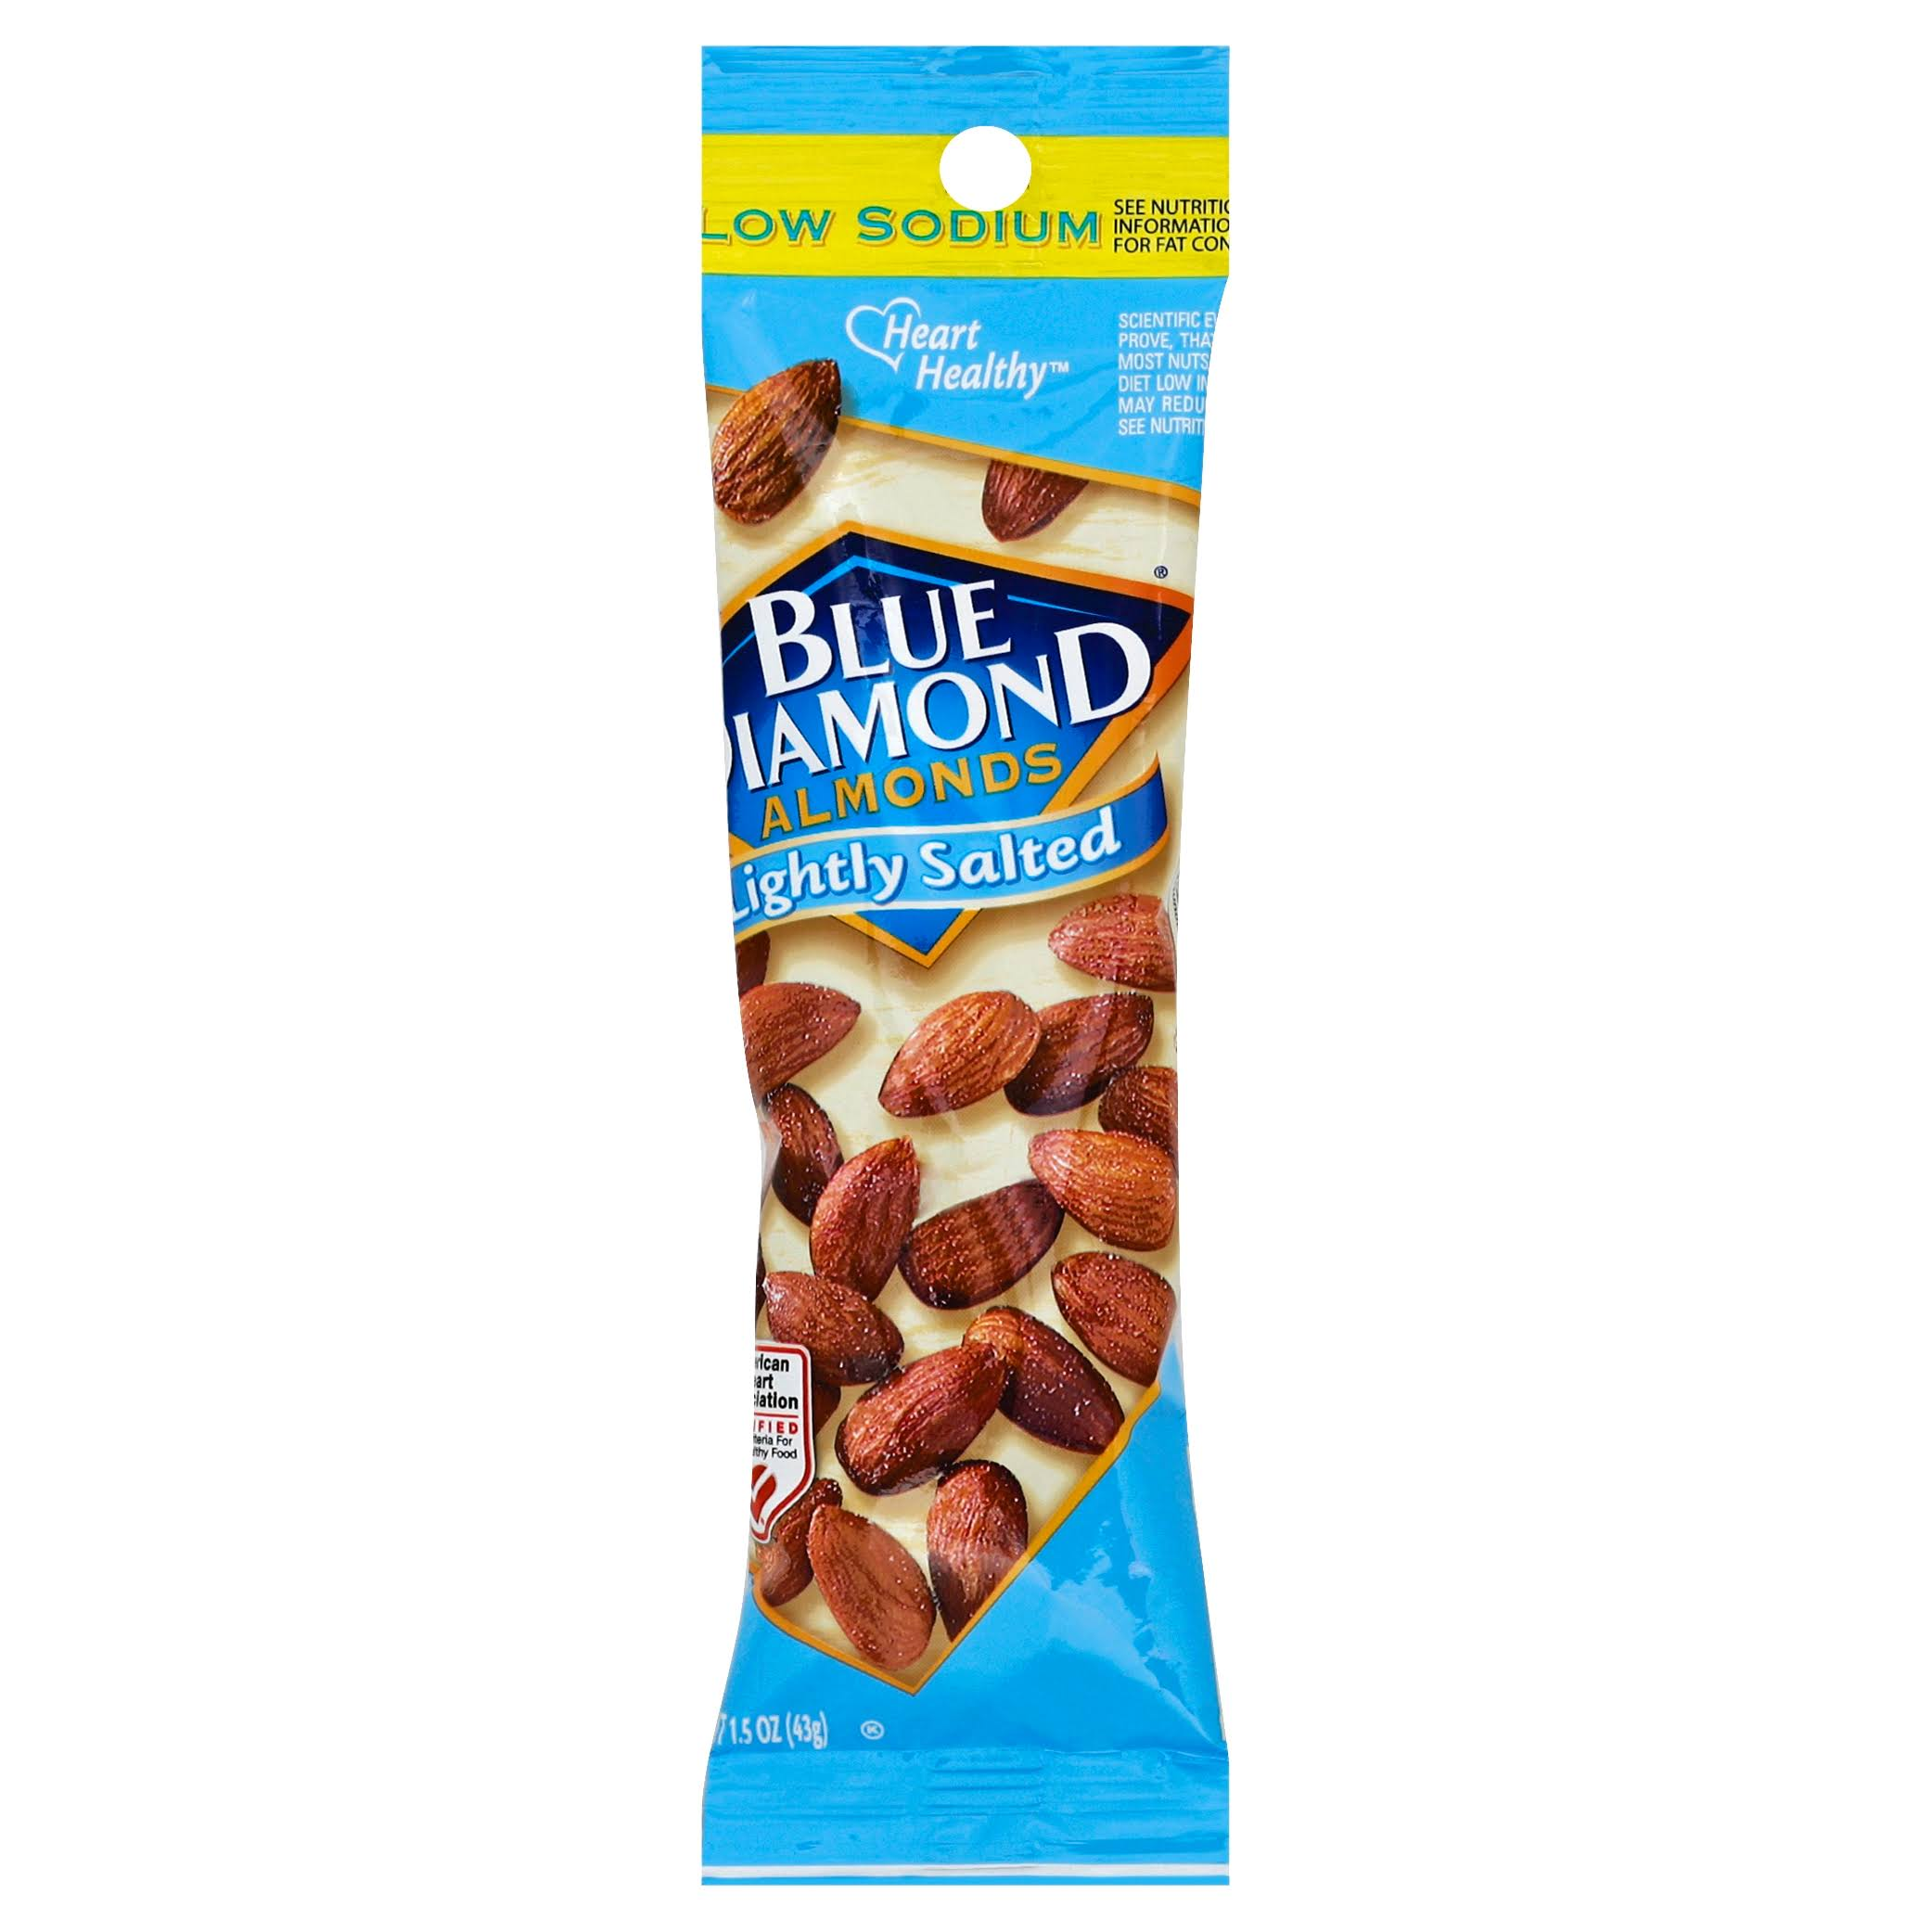 Blue Diamond Almonds - Lightly Salted, 1.5oz